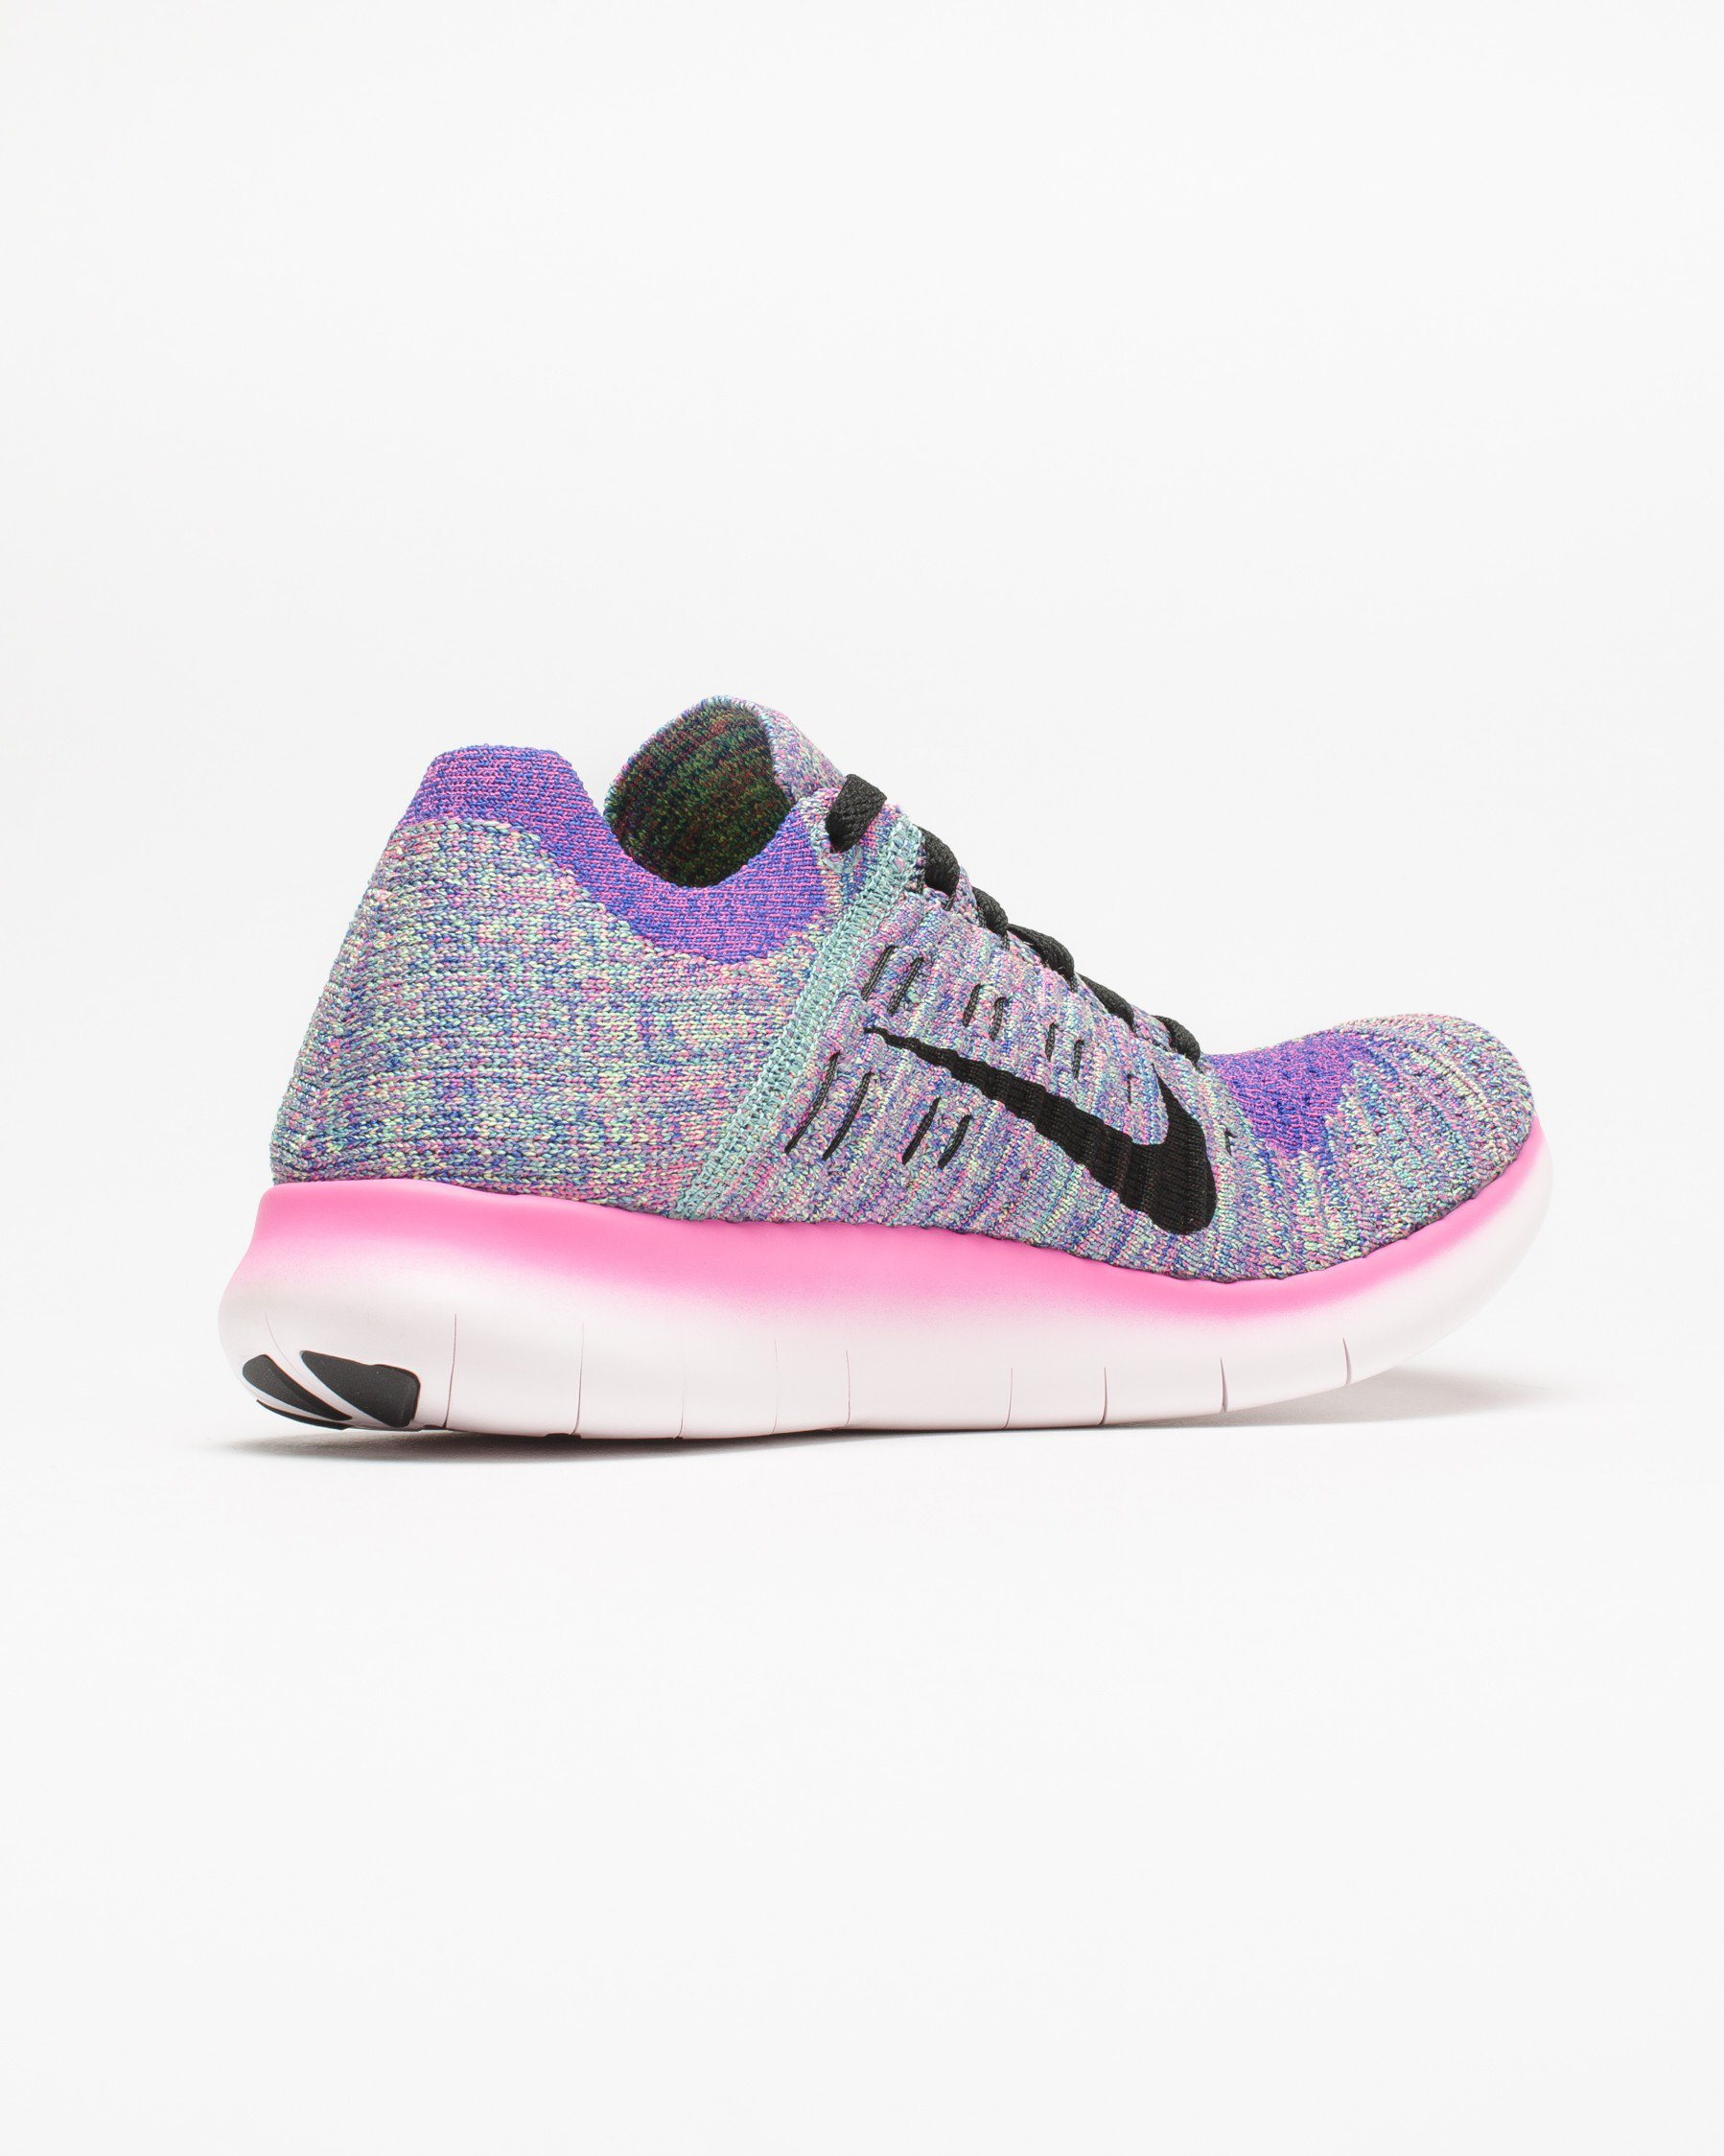 new lifestyle undefeated x large discount Nike WMNS Free Run Flyknit 831070-604 | SneakerNews.com